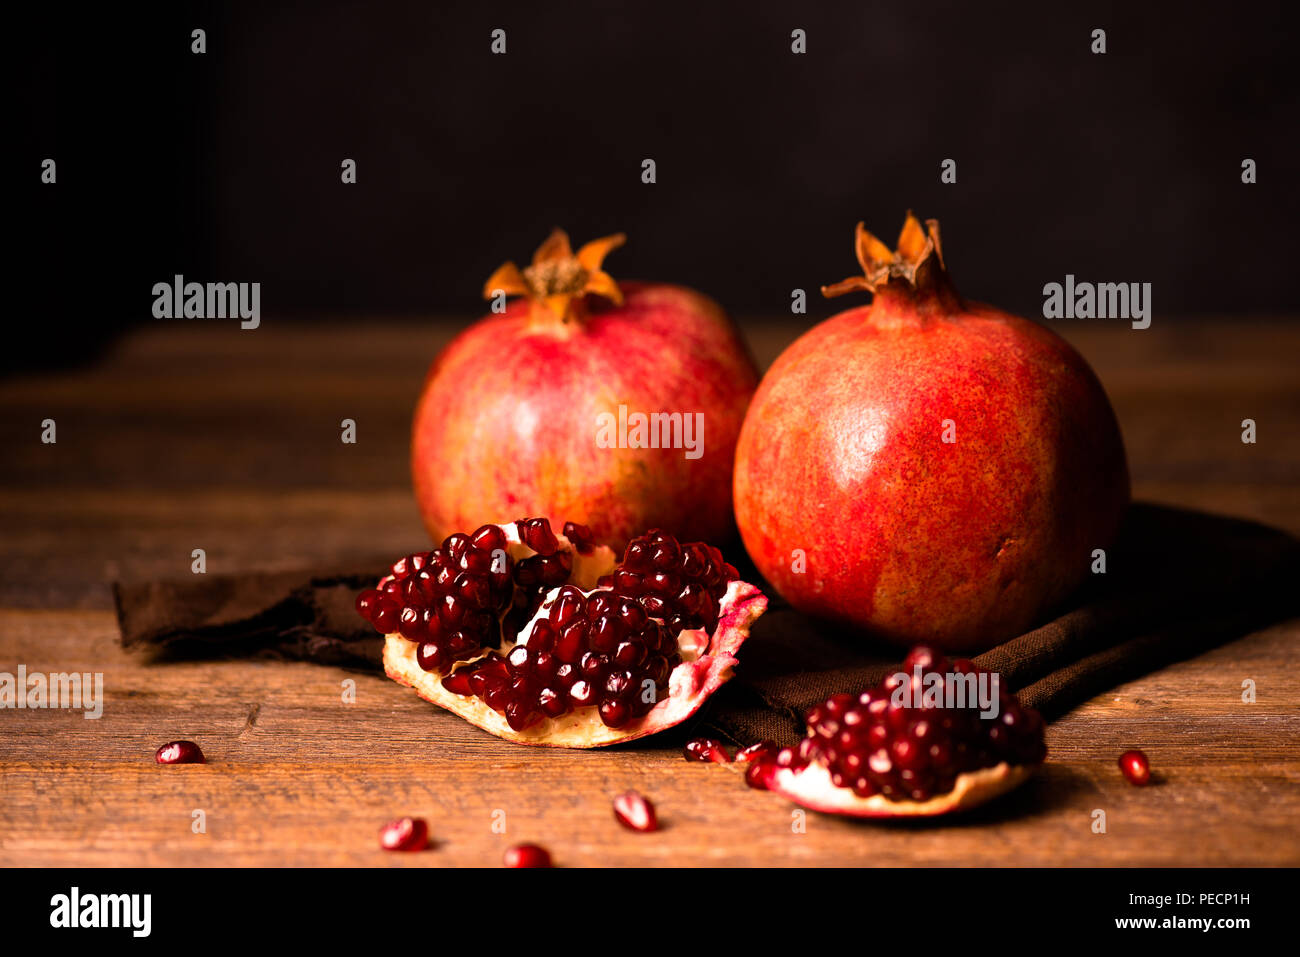 Pomegranate fruits with grains on wooden table. Dark moody. Life style. - Stock Image